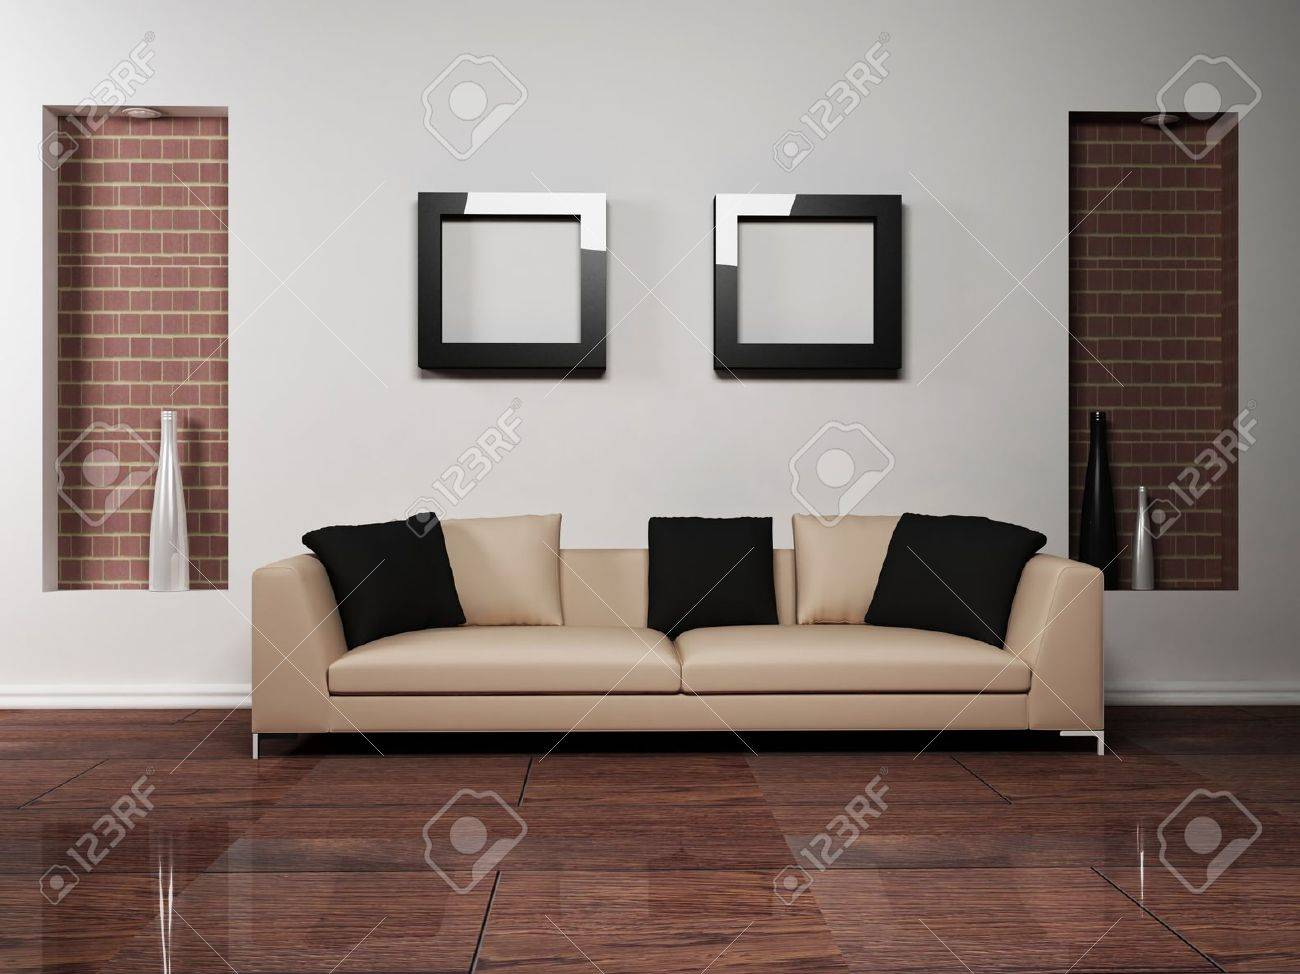 Moderne Innenarchitektur Wohnzimmer Stock Photo